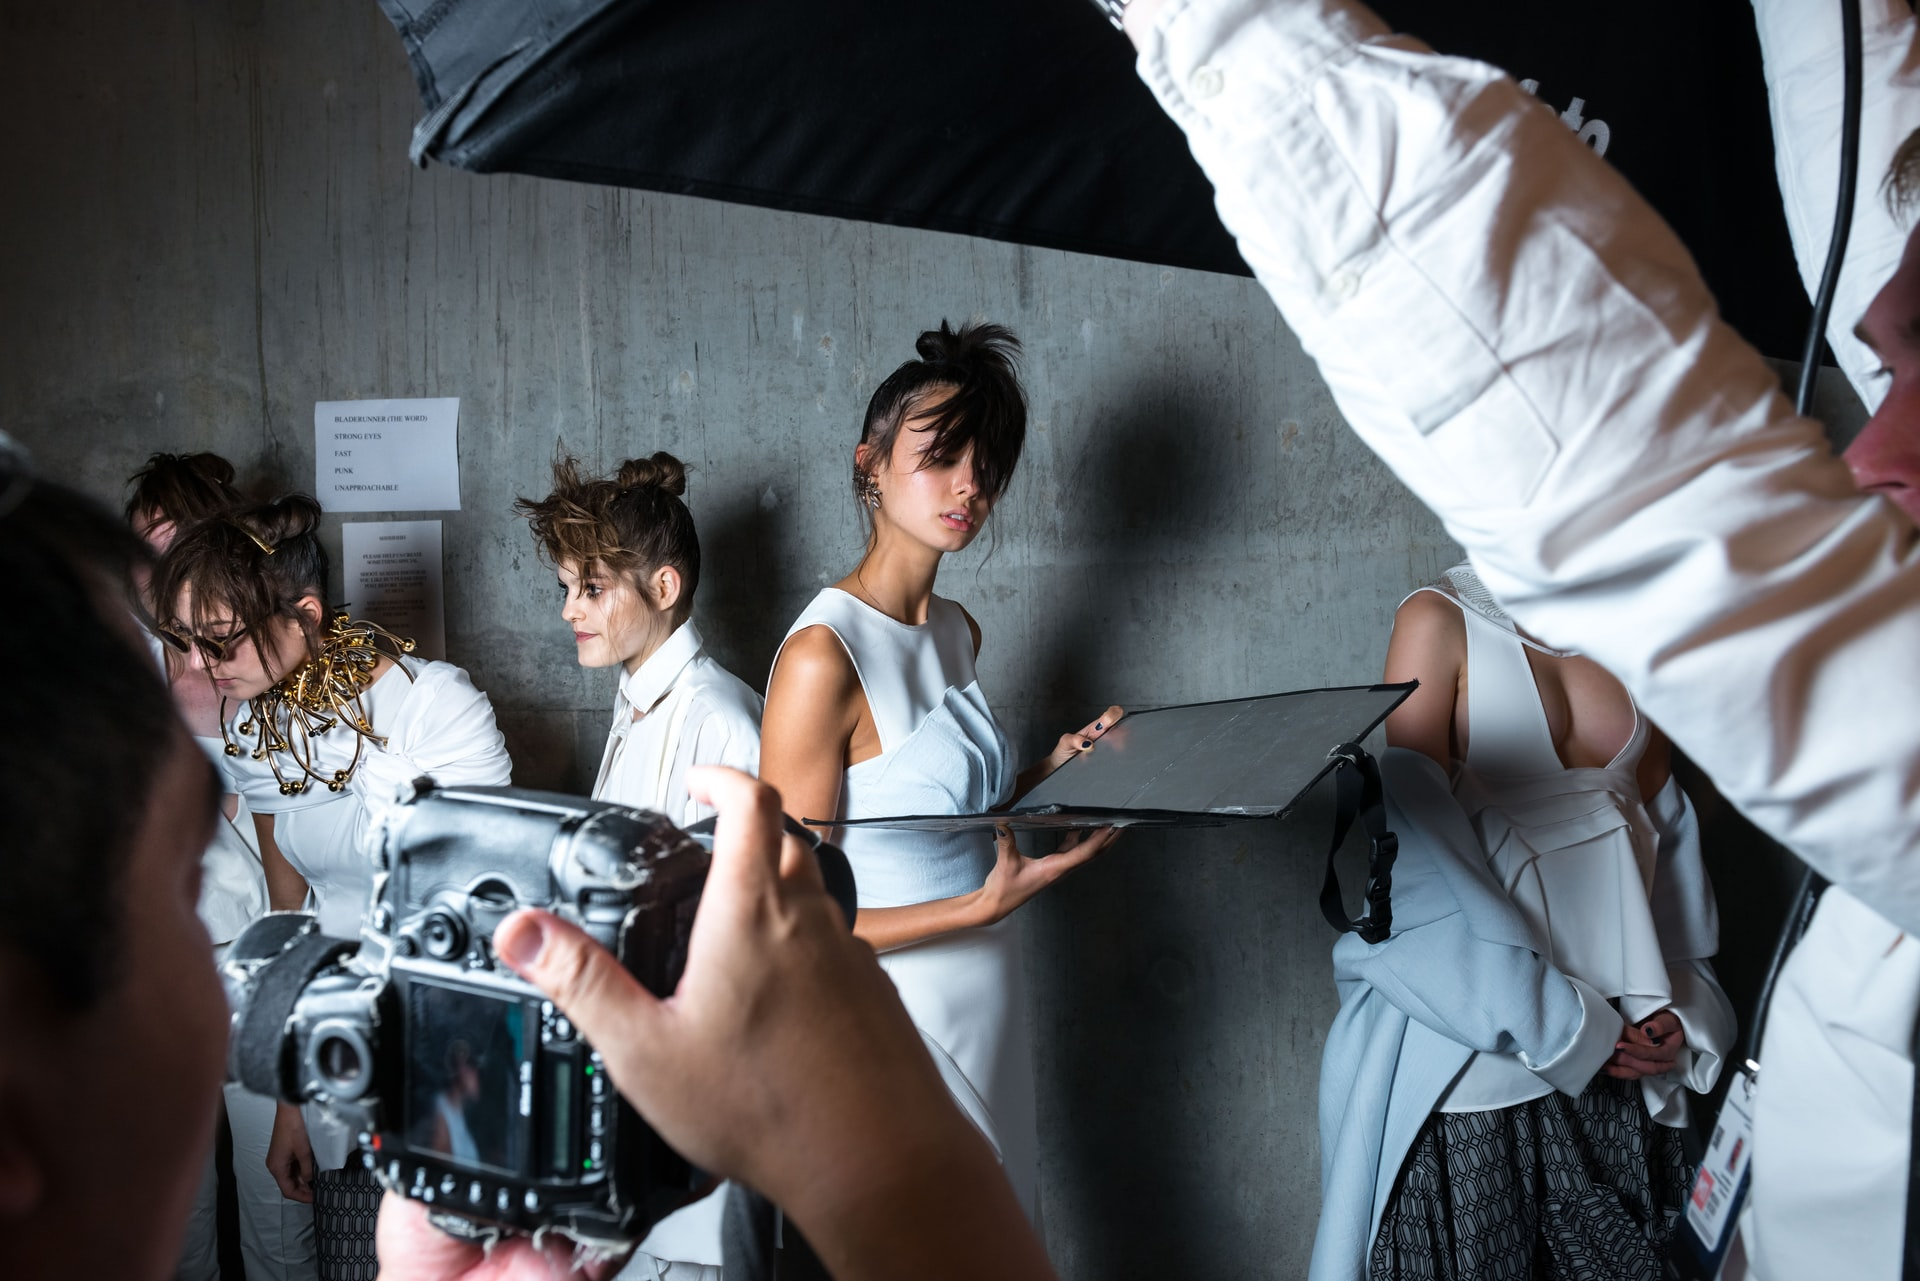 behind the scenes fashion photography, photography careers